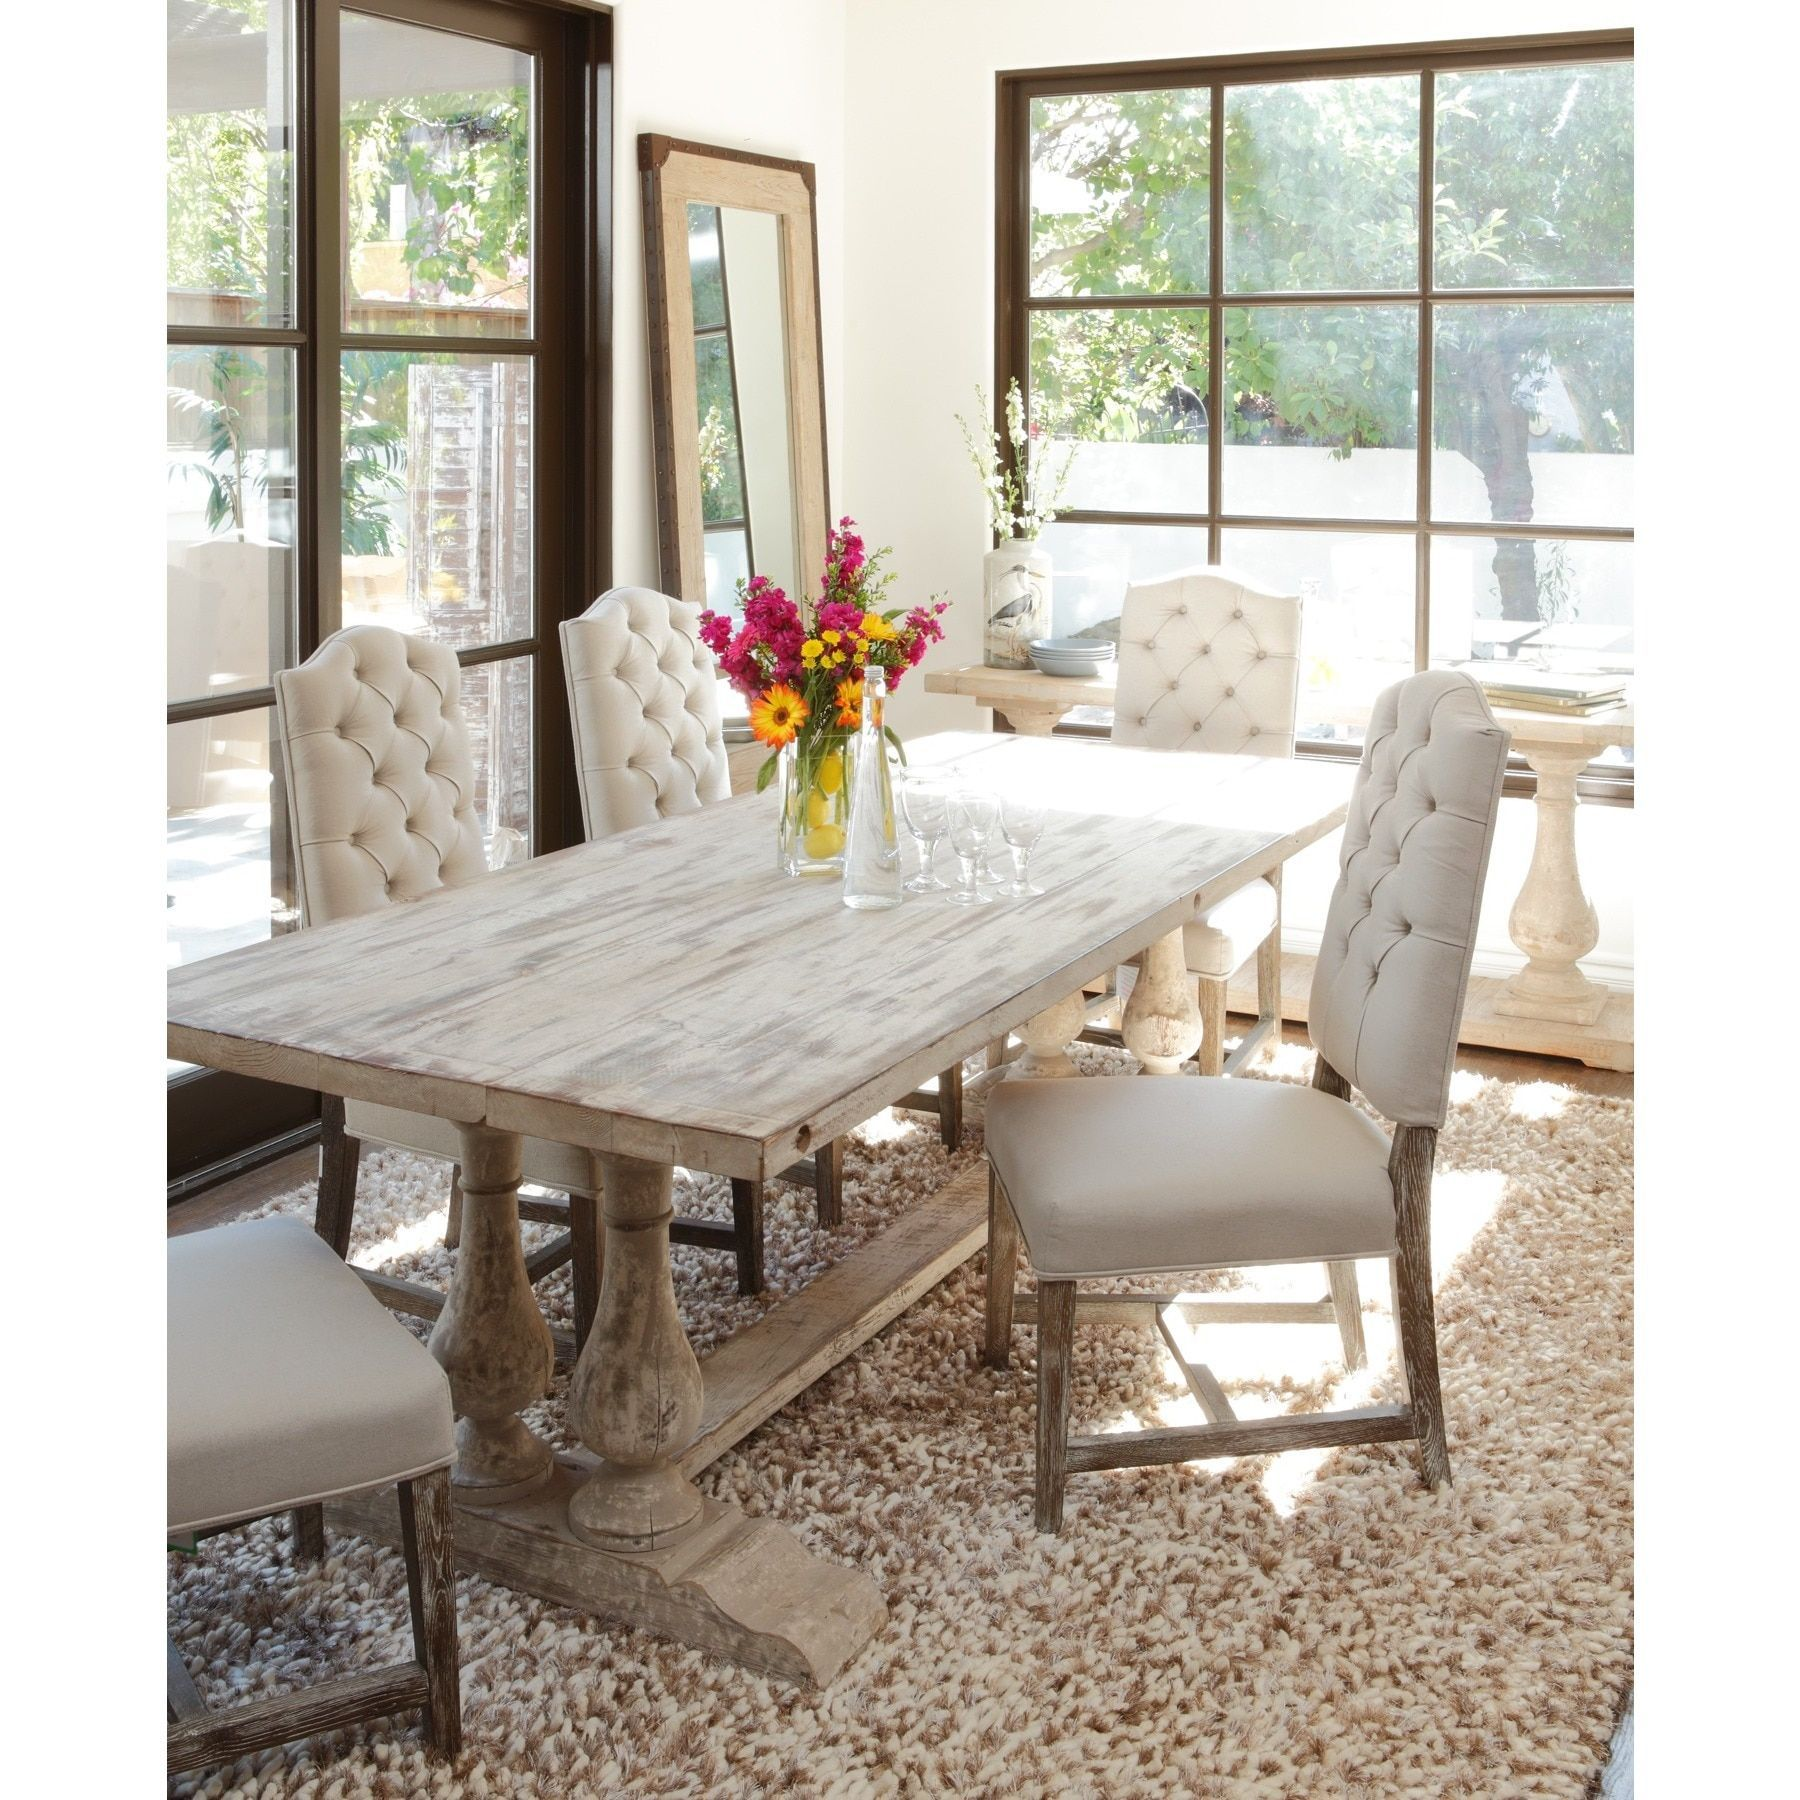 Wilson Reclaimed Wood 98 Inch Dining Table By Kosas Home Antique White